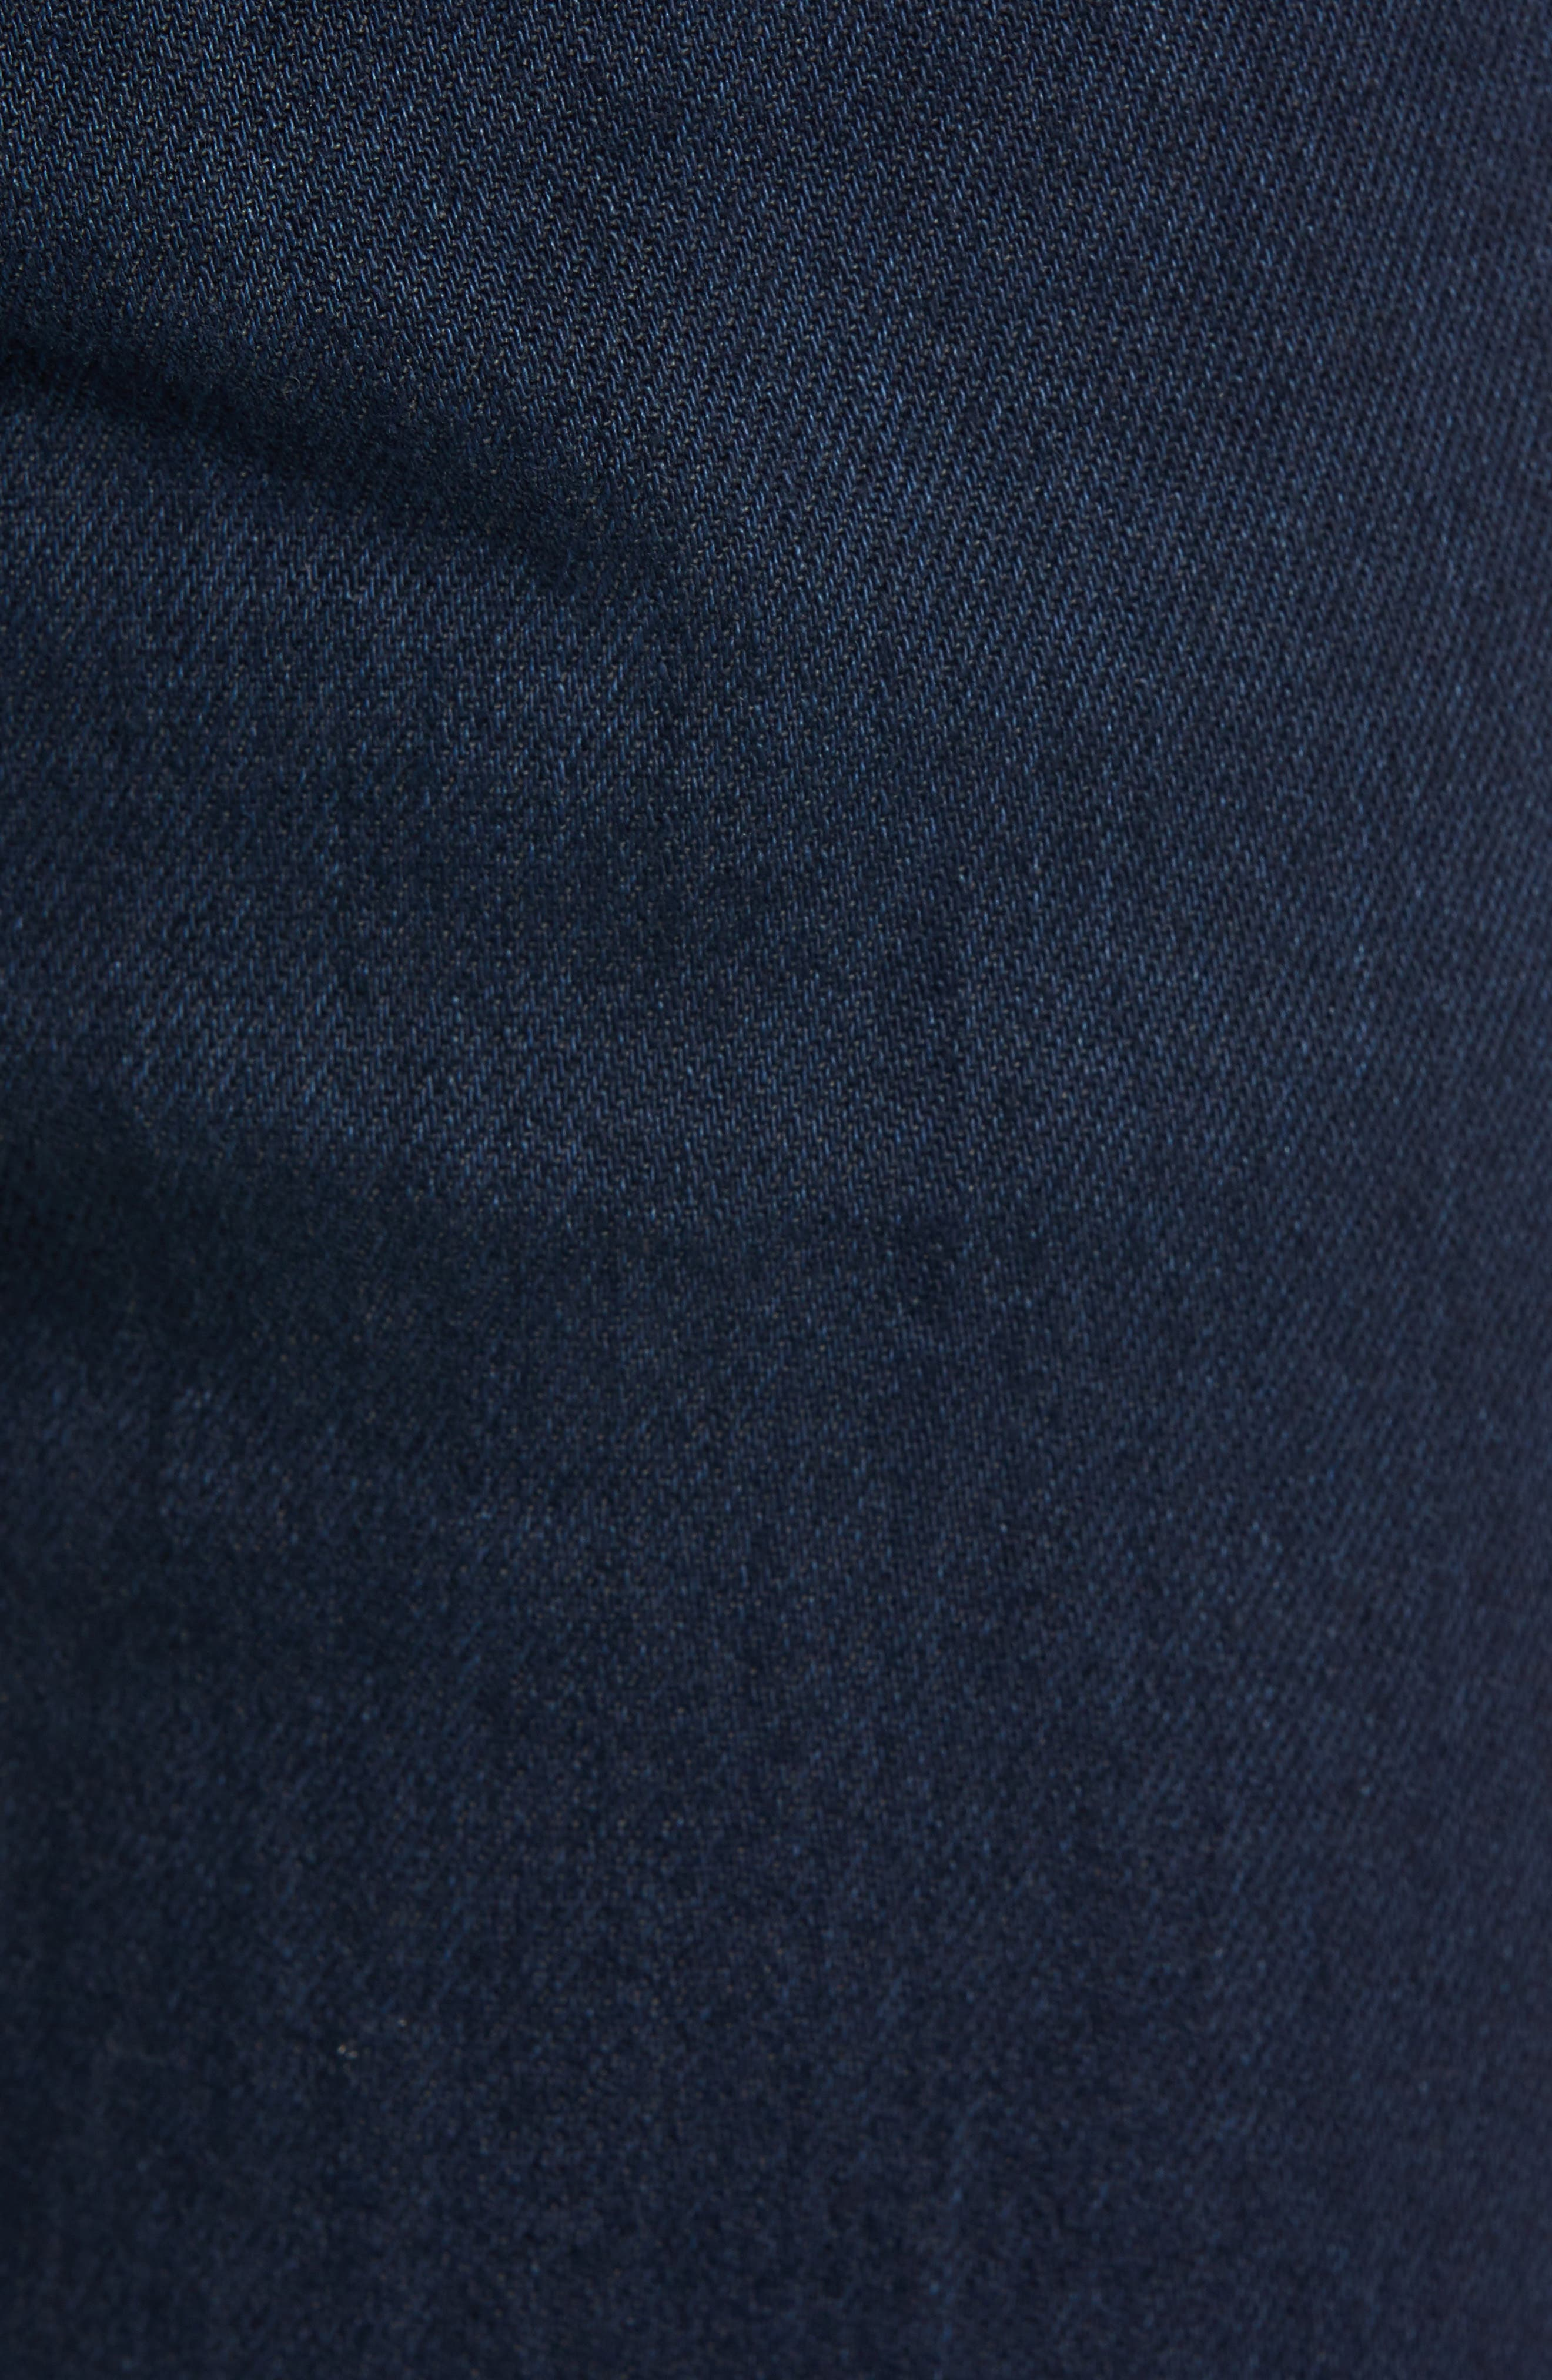 DIESEL<SUP>®</SUP>,                             Larkee Relaxed Fit Jeans,                             Alternate thumbnail 5, color,                             400